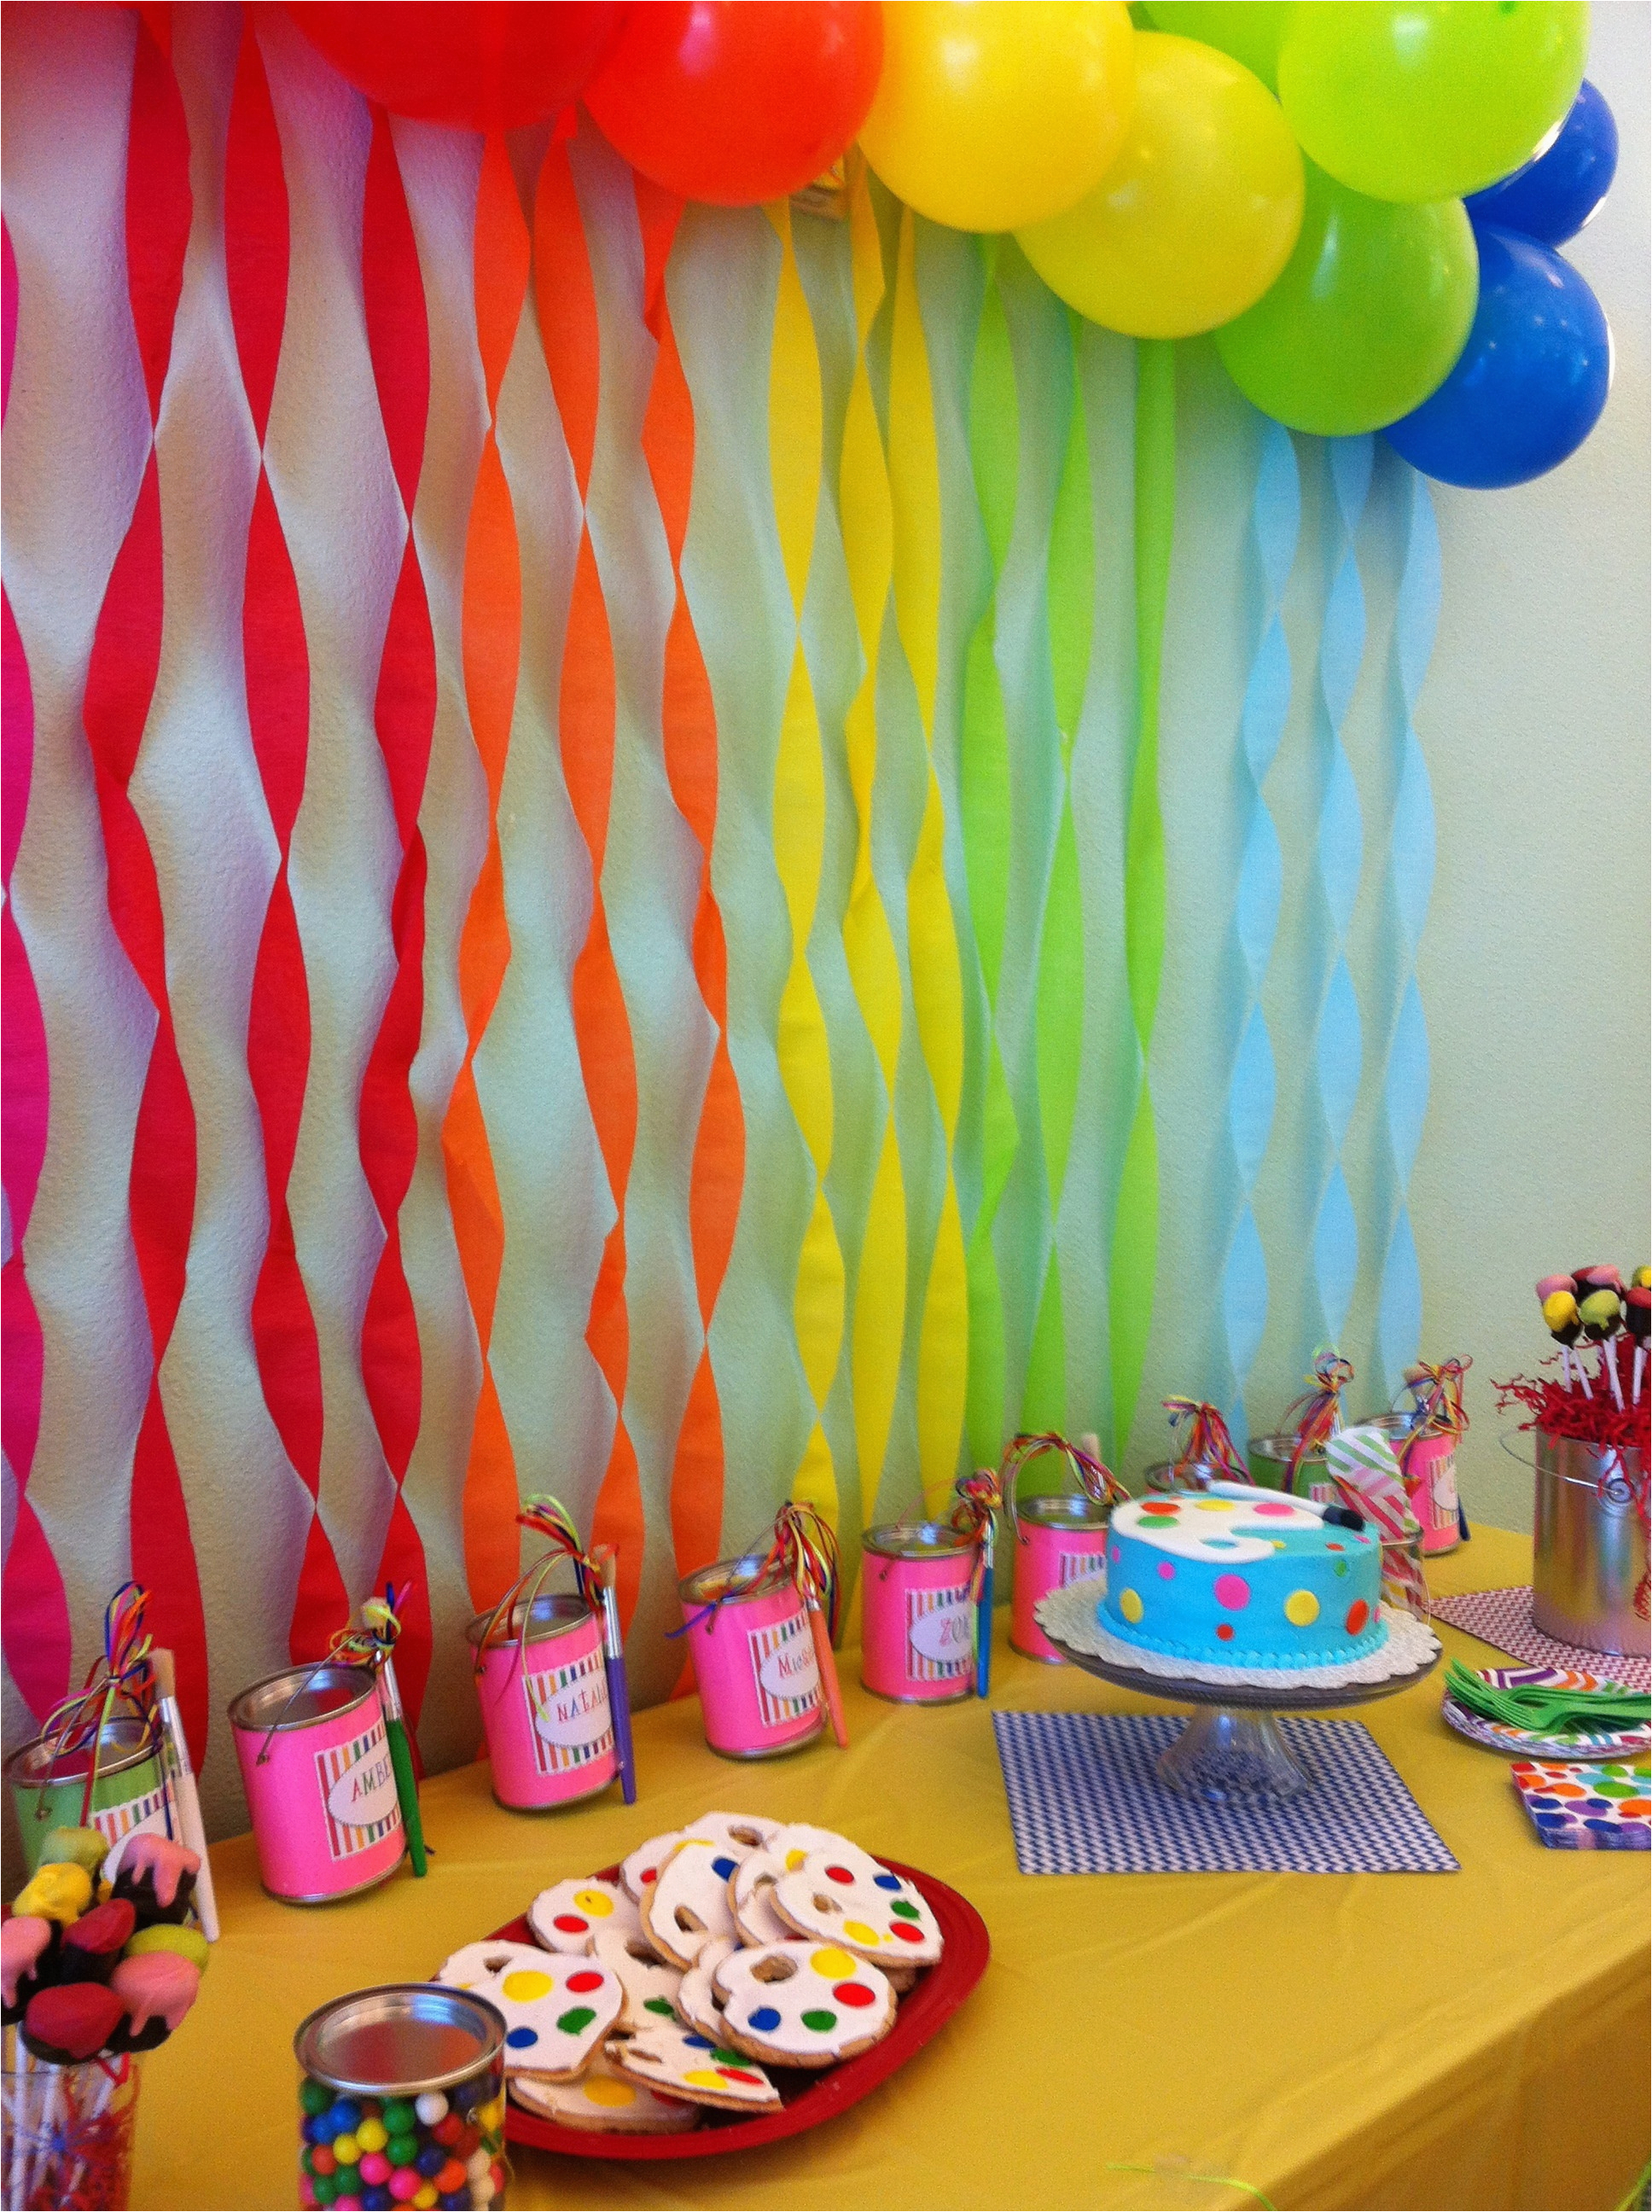 One Year Old Birthday Party Decorations 7 Ideaswritings And Papers